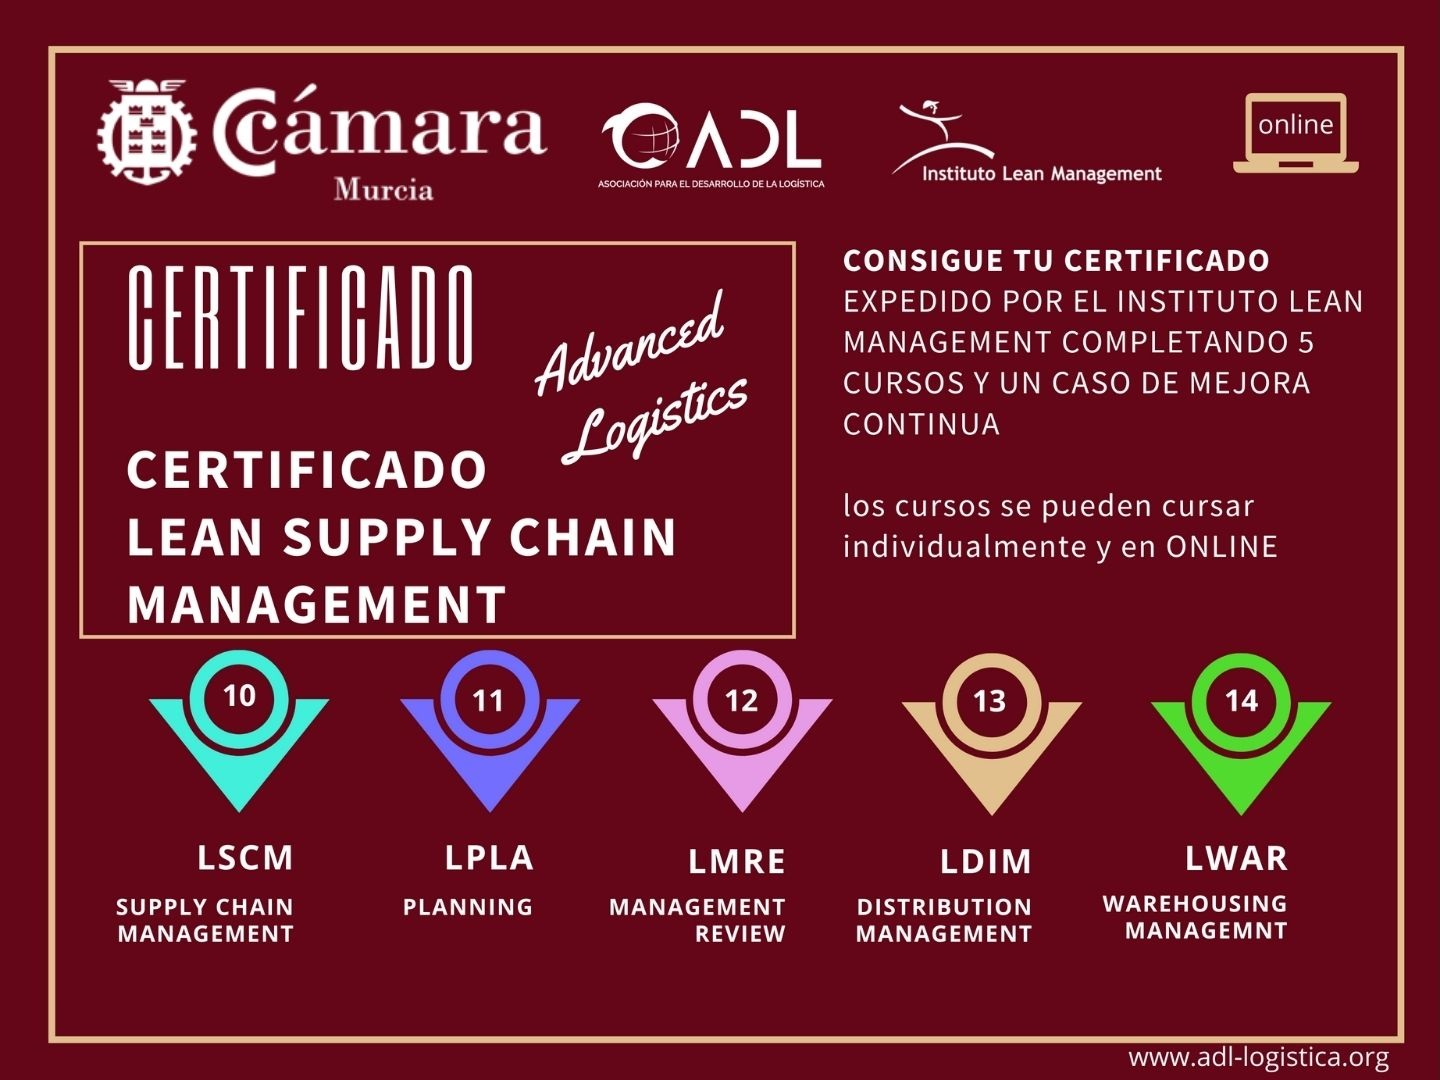 Certificado Lean Supply Chain Management - Cámara Comercio Murcia